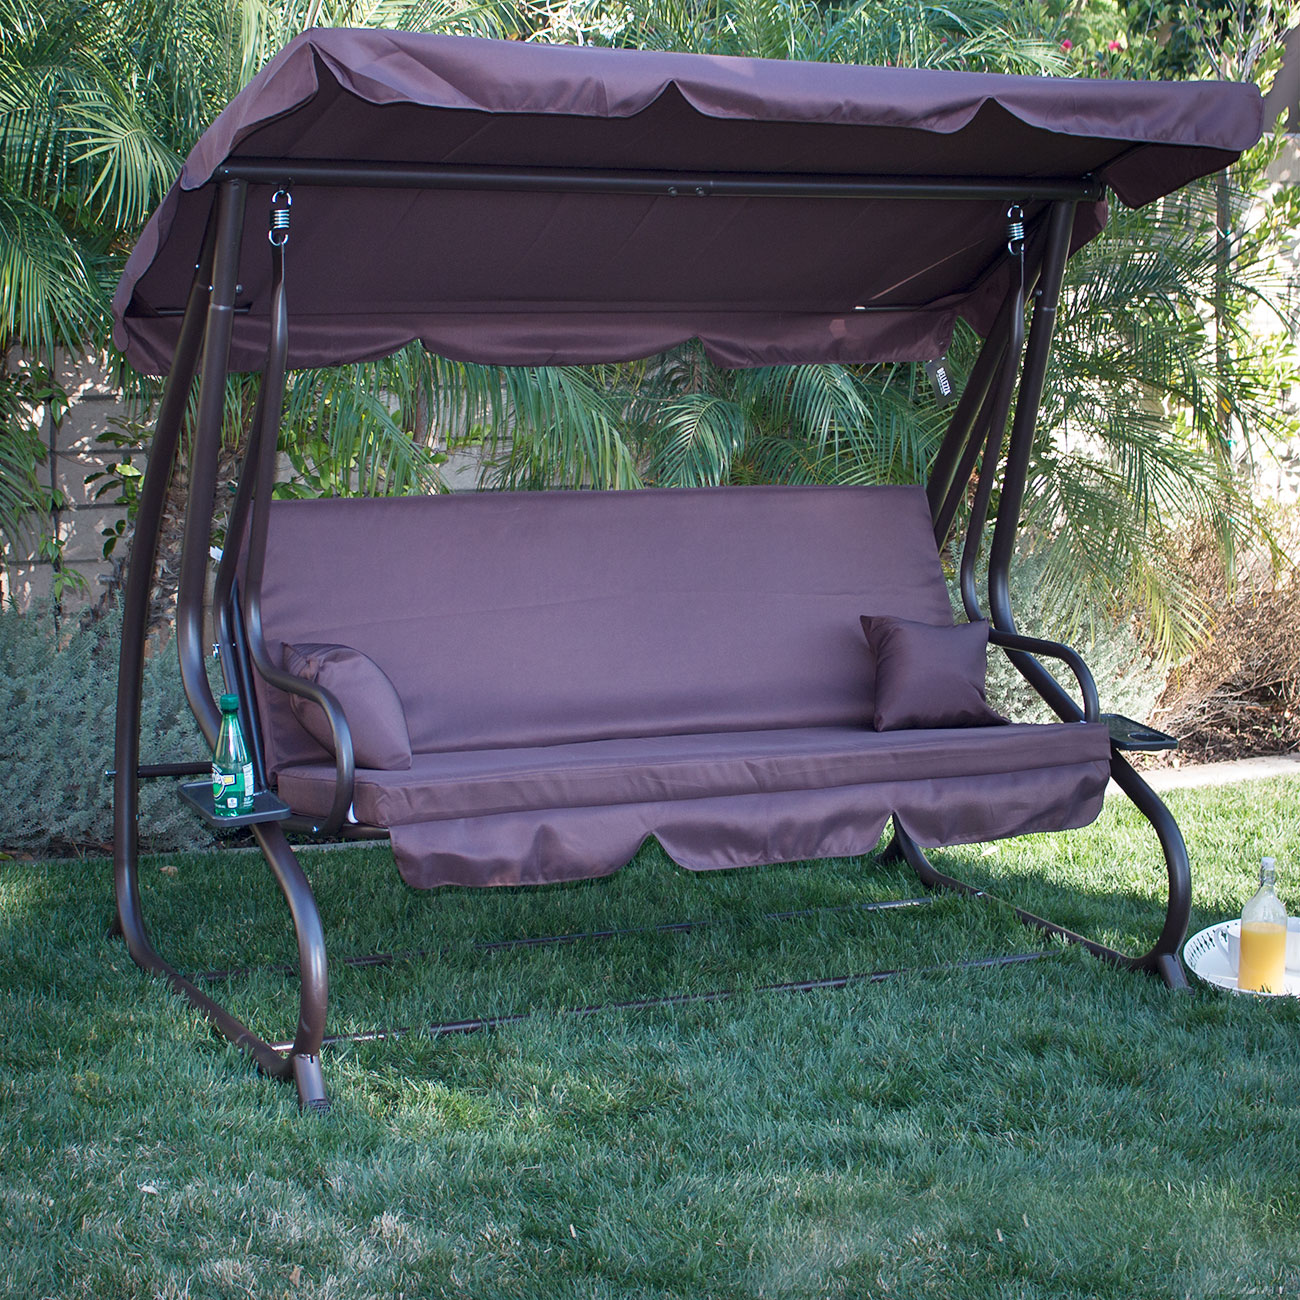 3 Person Outdoor Swing Wcanopy Seat Patio Hammock. Patio Dining Set With Leaf. Round Patio Table Tops. Patio Furniture Prescott Valley Az. Martha Stewart Patio Table Umbrella. Ideas For Stamped Concrete Patio. Outdoor Wicker Patio Furniture Dallas. Patio Furniture Mesh Fabric. Ana White Patio Table Plans